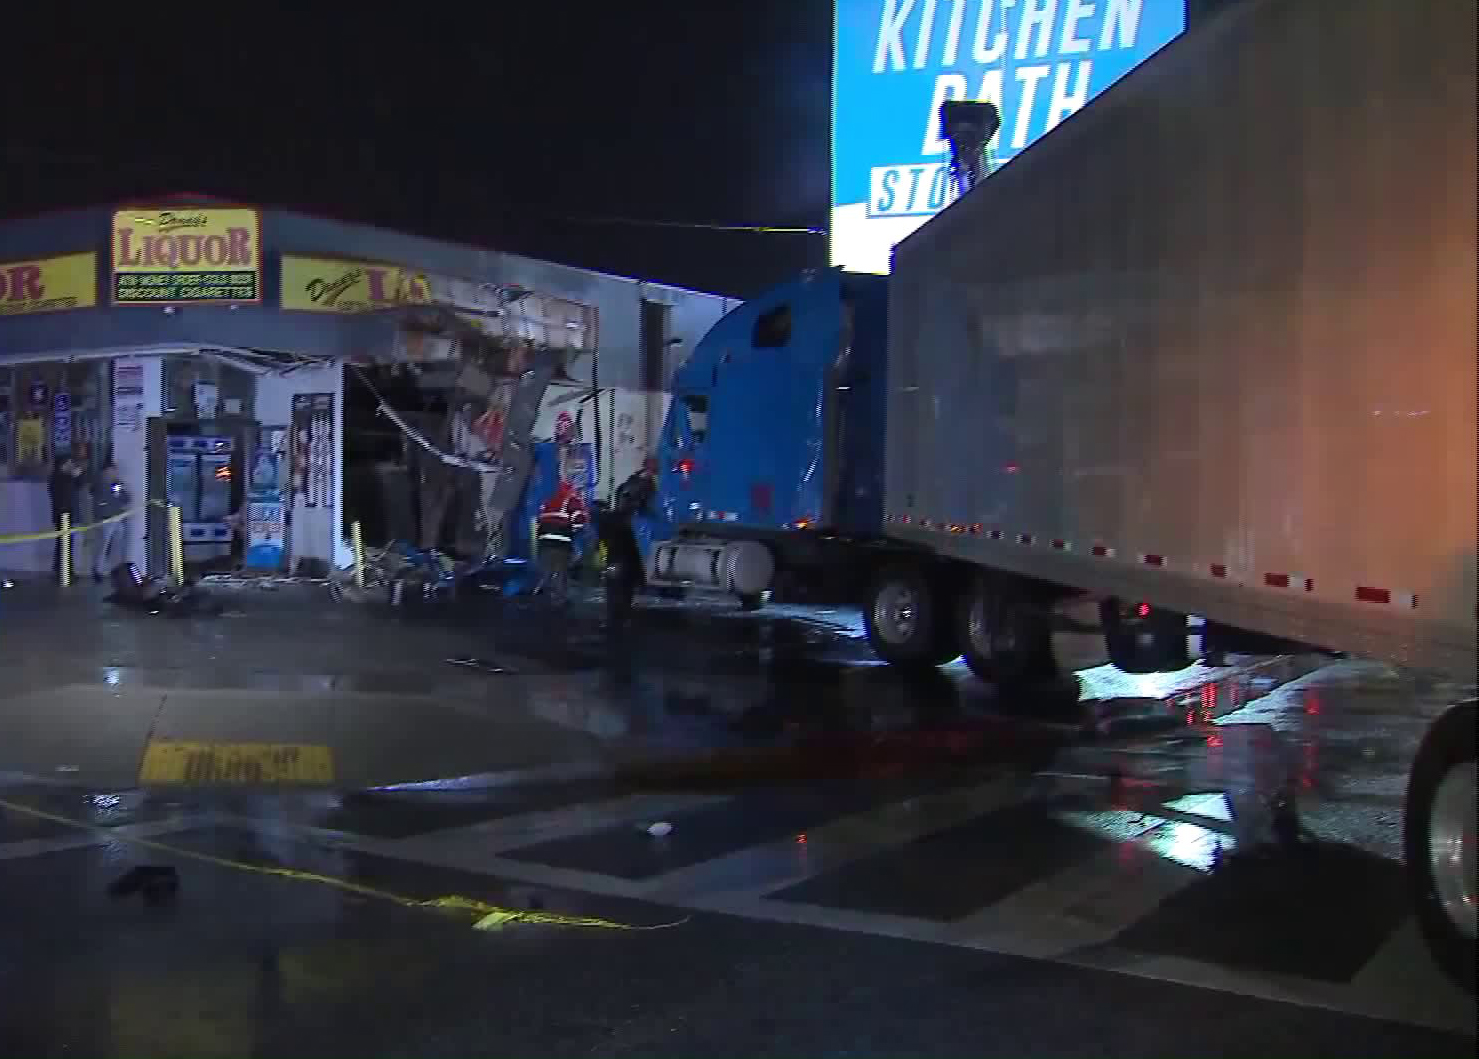 A big rig crashed into a liquor store in the Sun Valley area on Dec. 23, 2019. (Credit: KTLA)